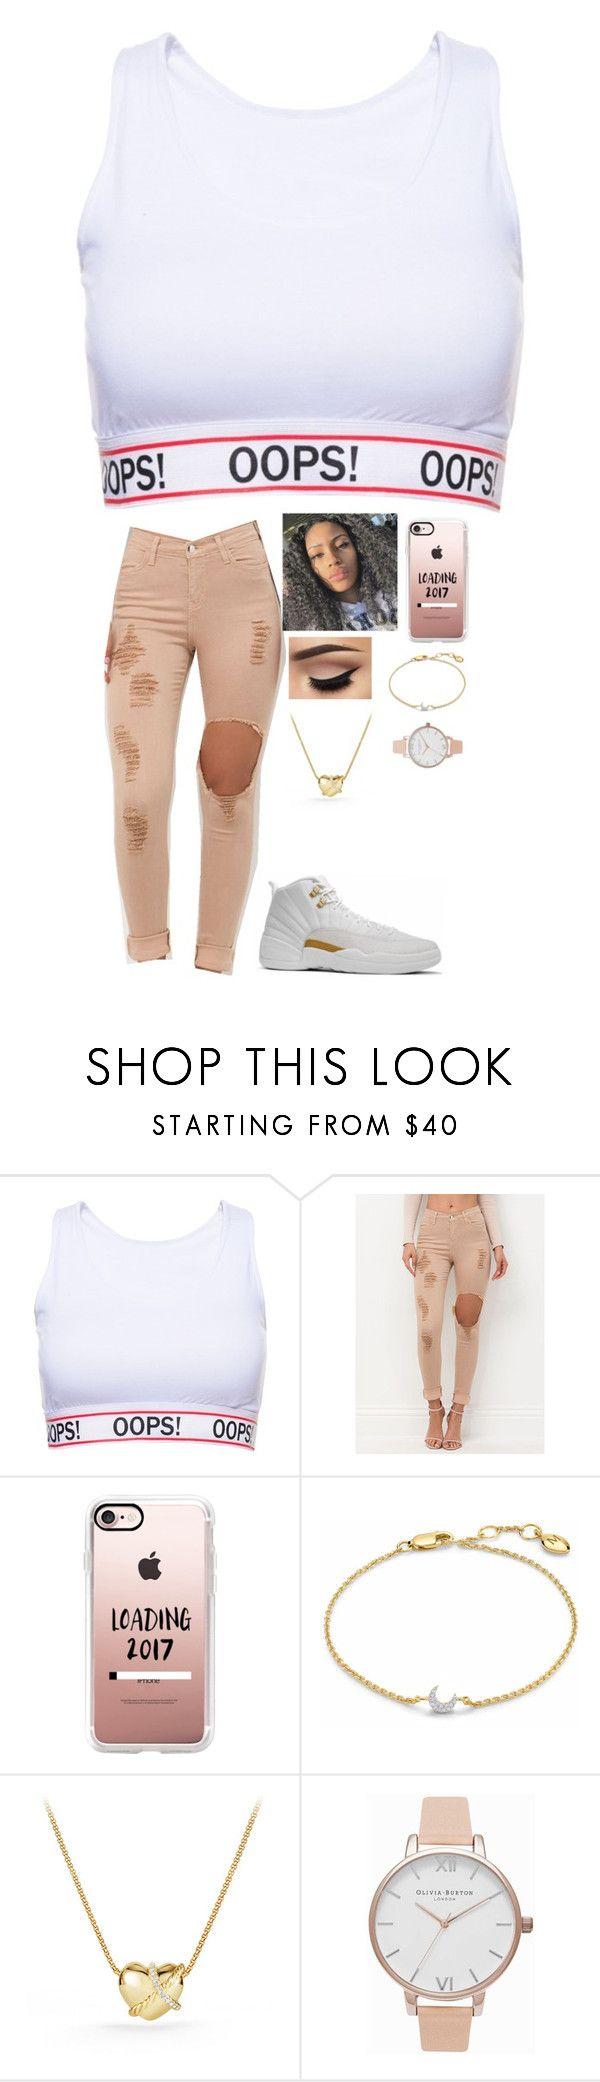 """""""-✌"""" by swaggyrl ❤ liked on Polyvore featuring Casetify, Missoma, David Yurman and Olivia Burton"""